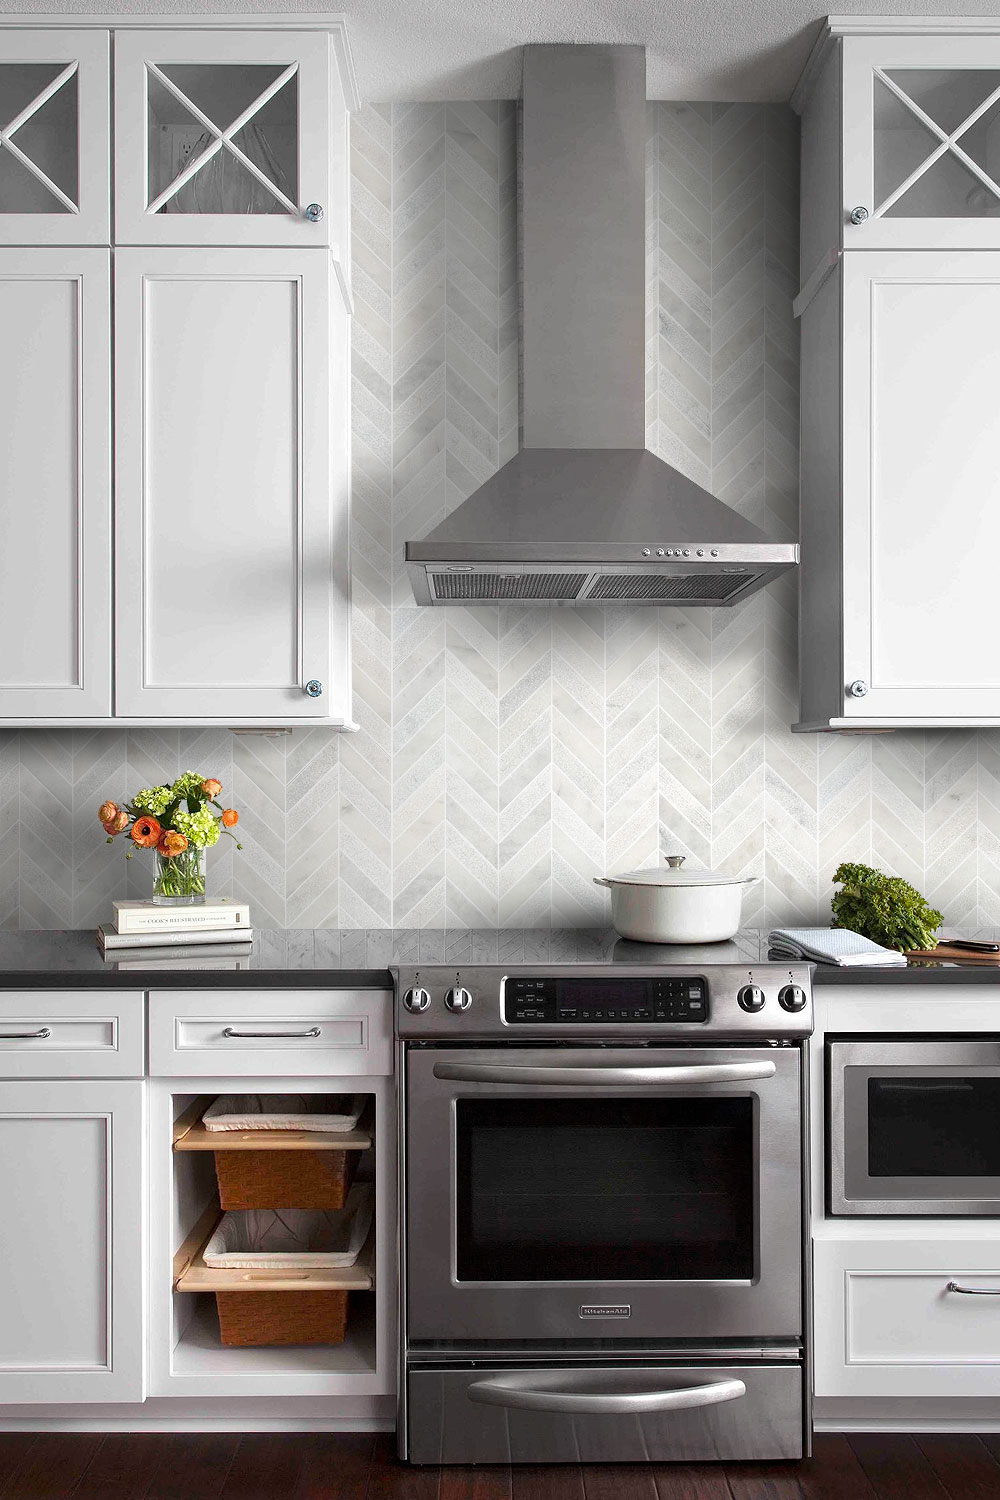 Farmhouse Transitional Kitchen Black Granite Countertop Chevron Backspash Tile Backsplash Com